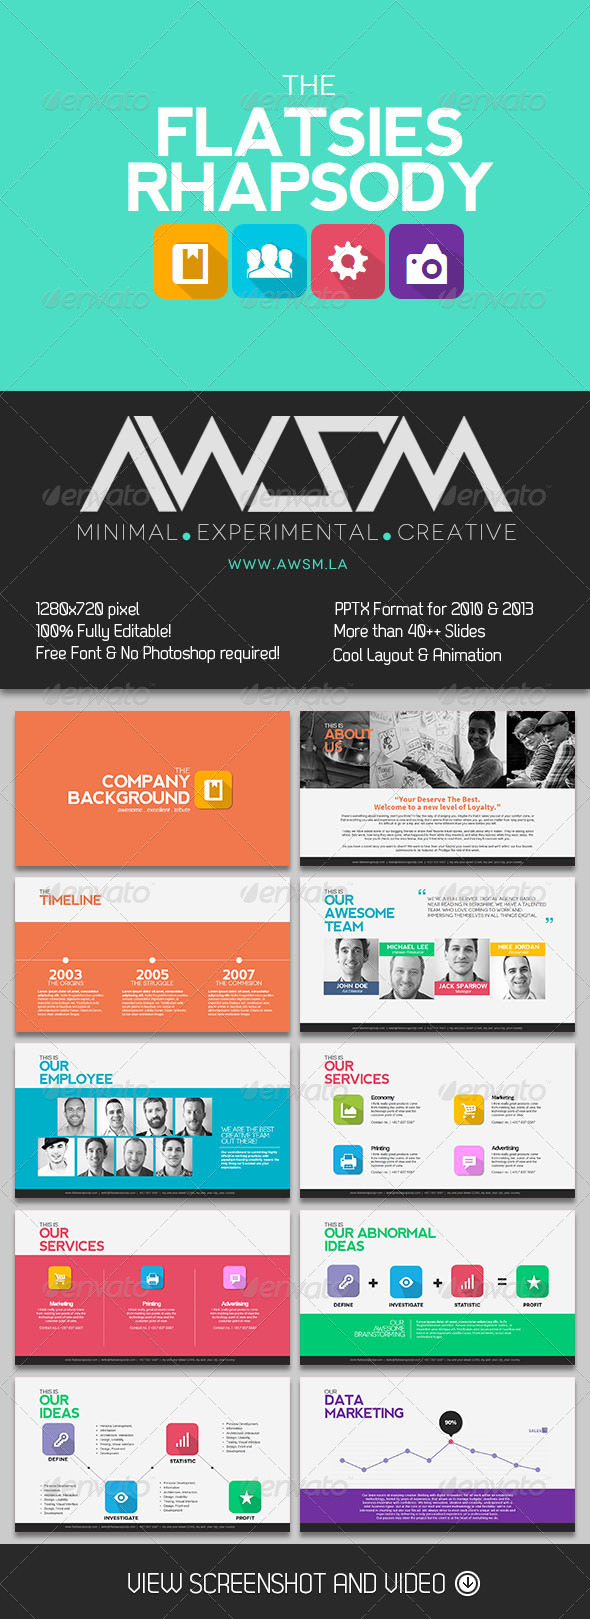 GraphicRiver Flatsies Rhapsody PowerPoint Presentation 6168034